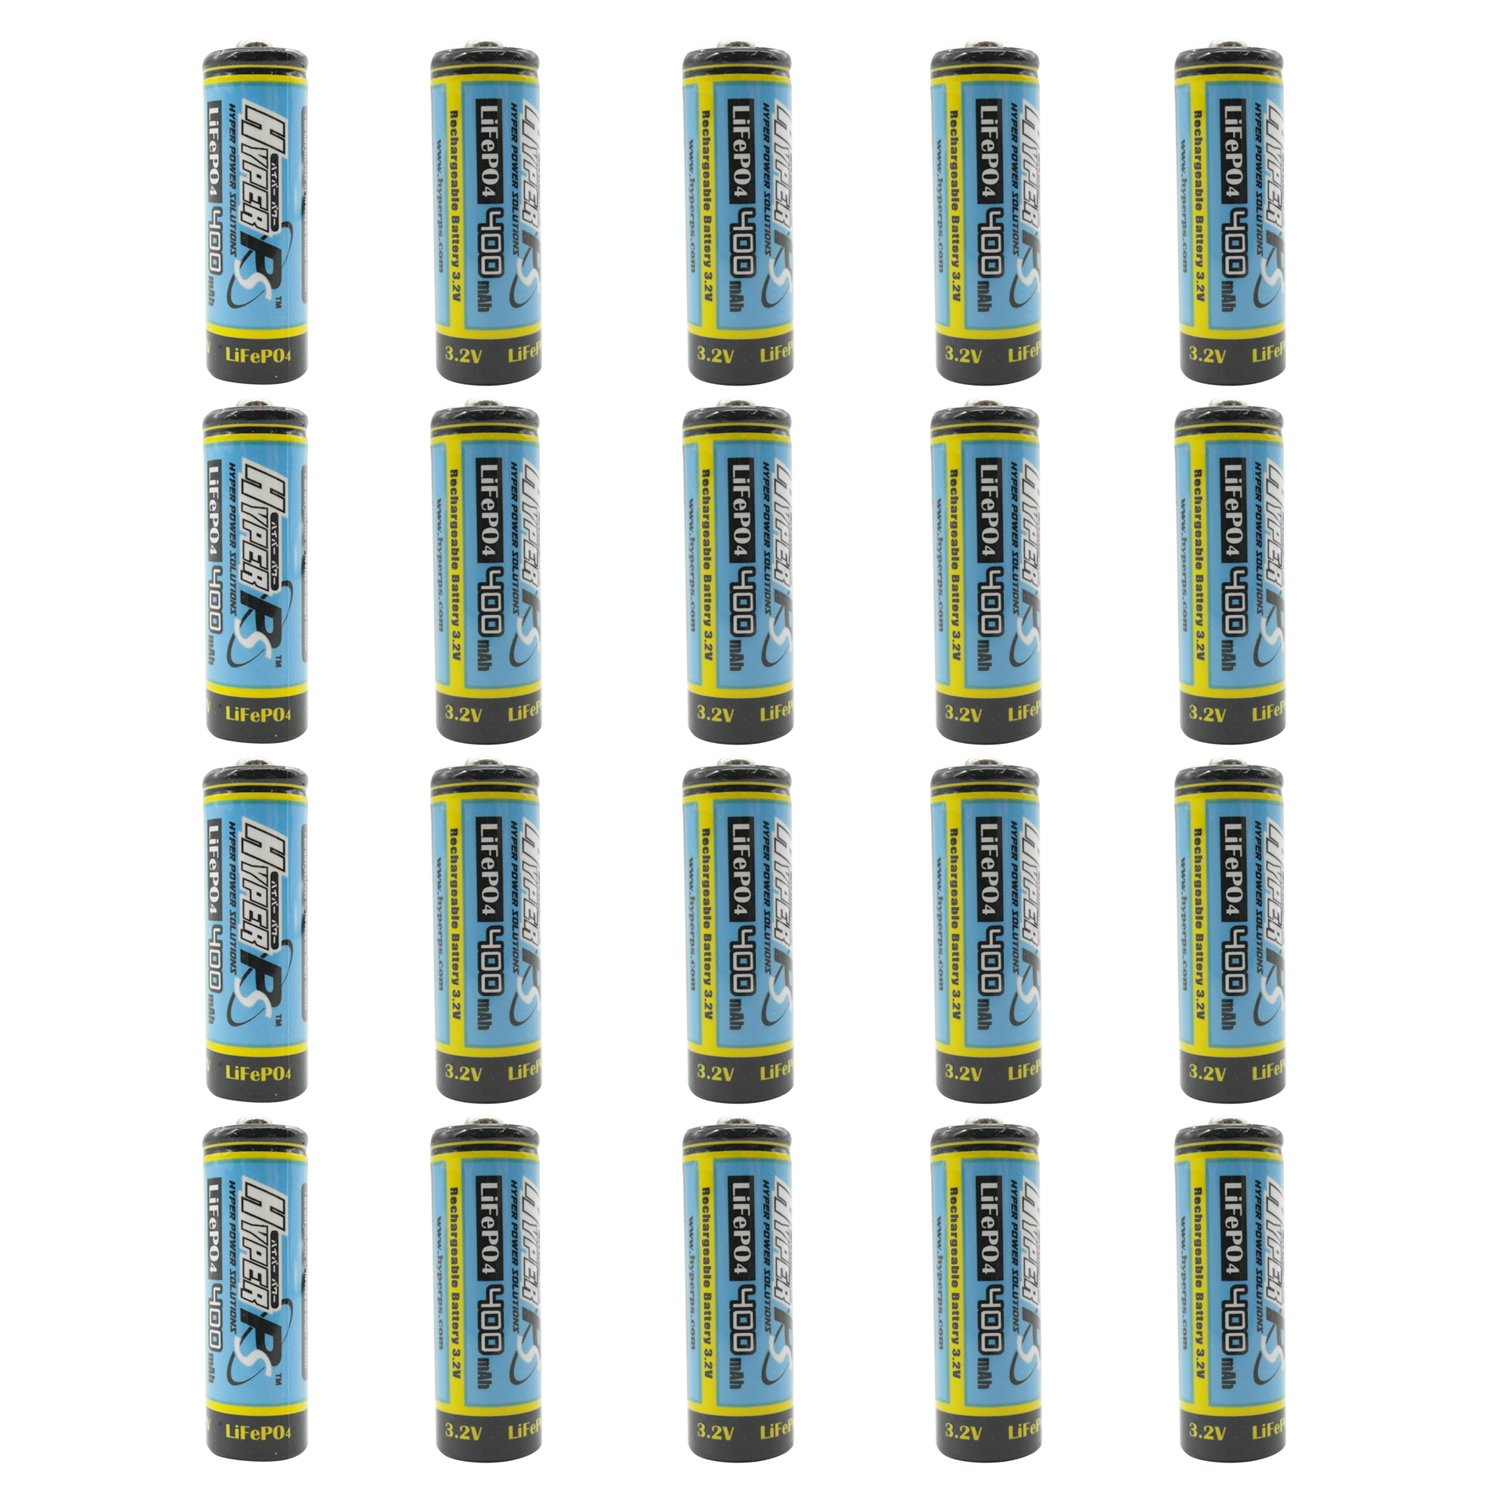 (20-Pack) HyperPS 3.2V LiFePo4 14430 4/5 AA (14 x 43mm) 400mAh Rechargeable Battery for Solar Panel Light, Tooth Brush, Shaver, Flashlight